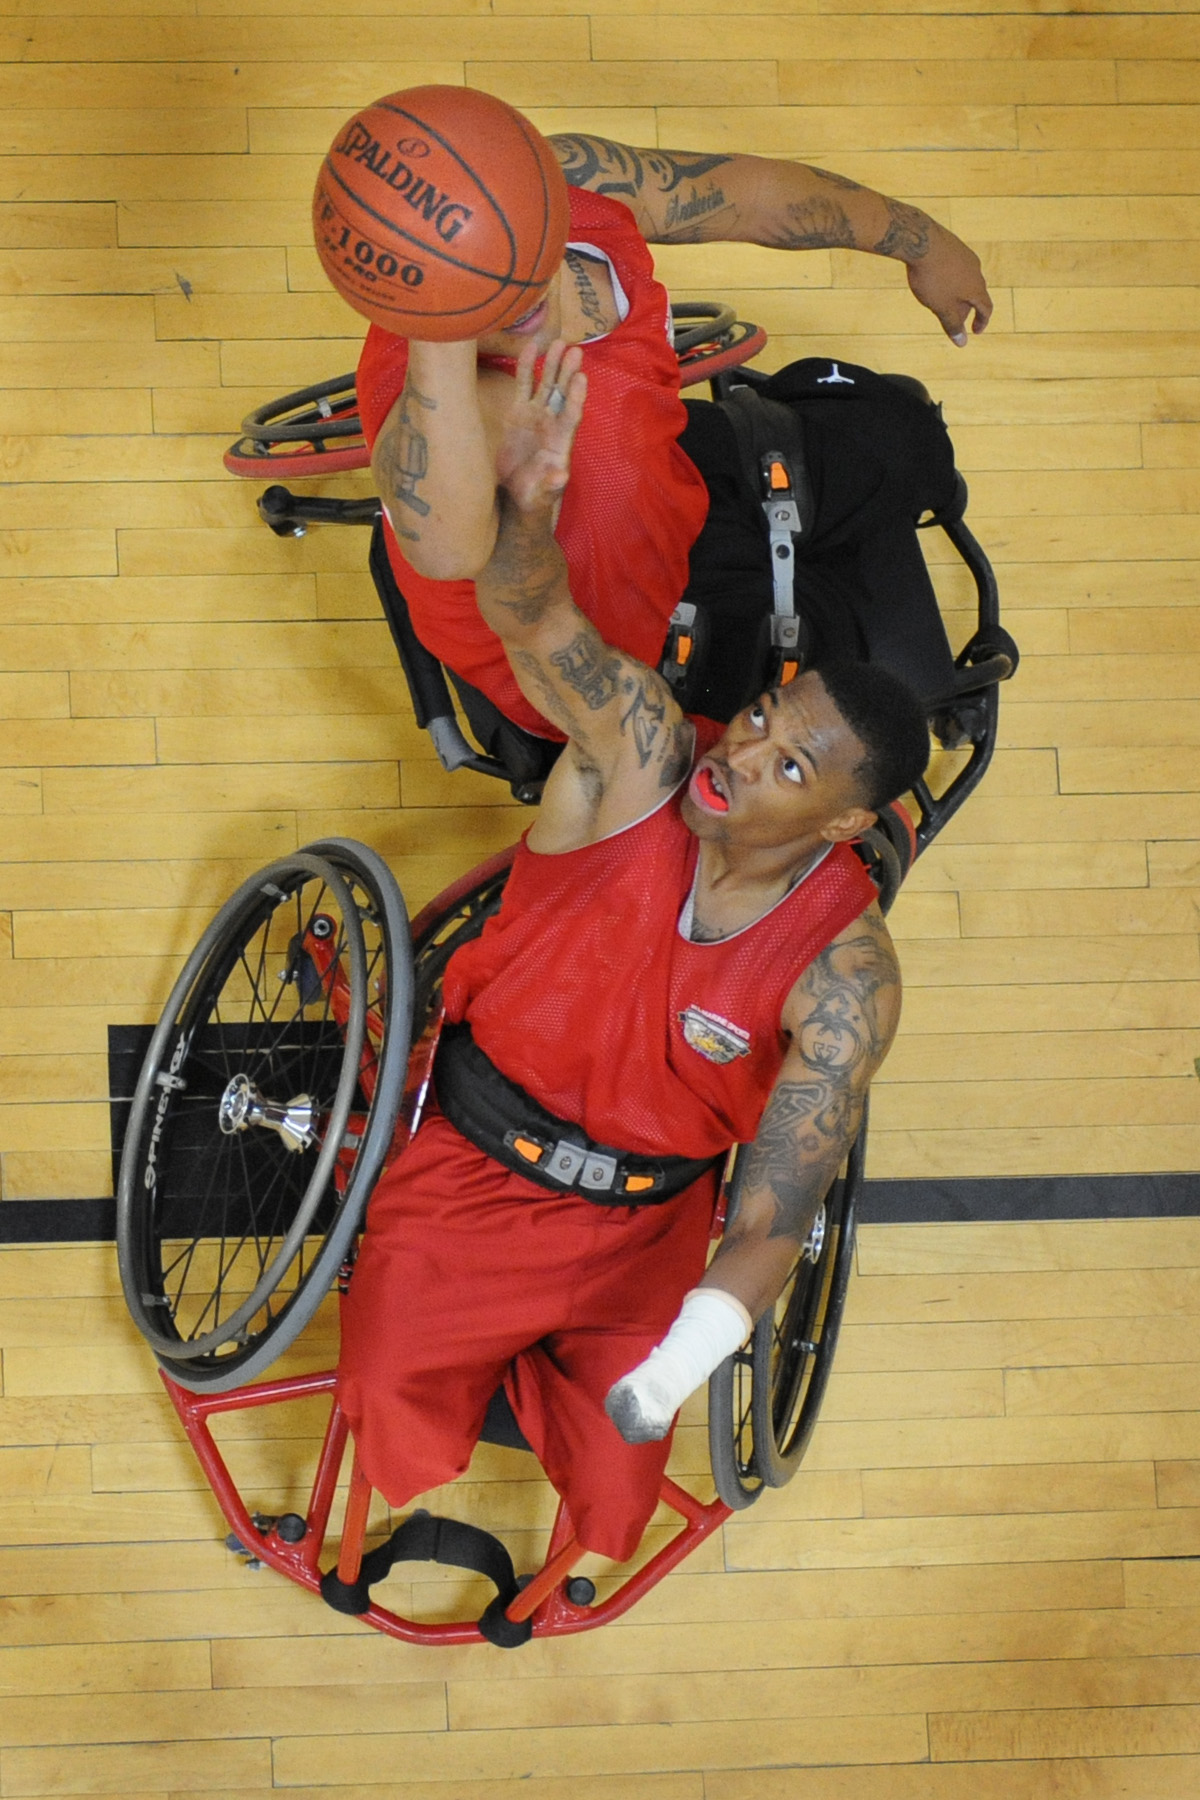 2013-05-15-wheelchairbasketball.jpg